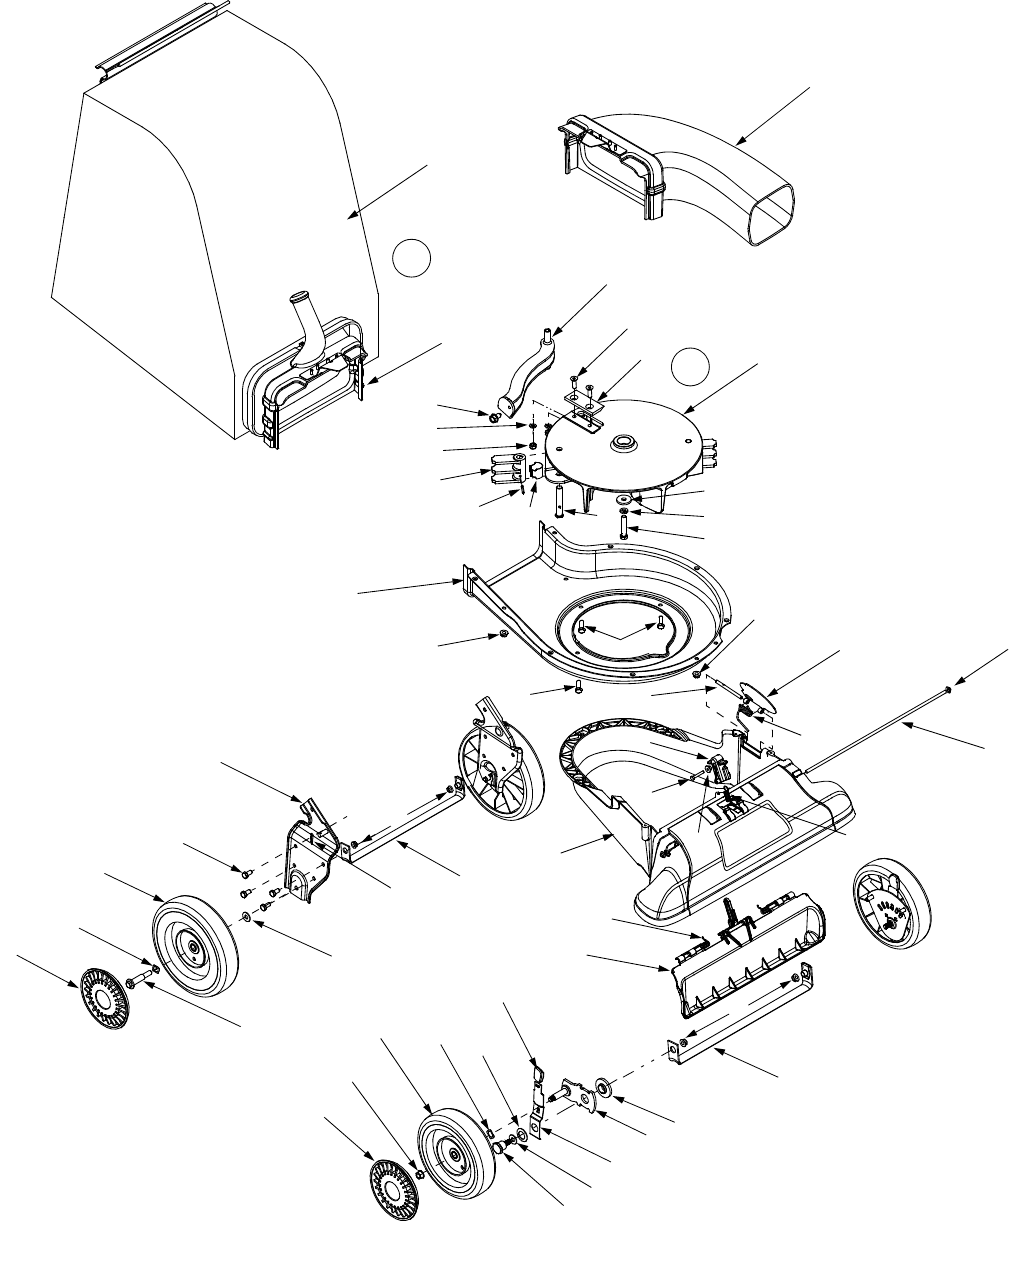 Page 21 of Sears Yard Vacuum 247.77055 User Guide